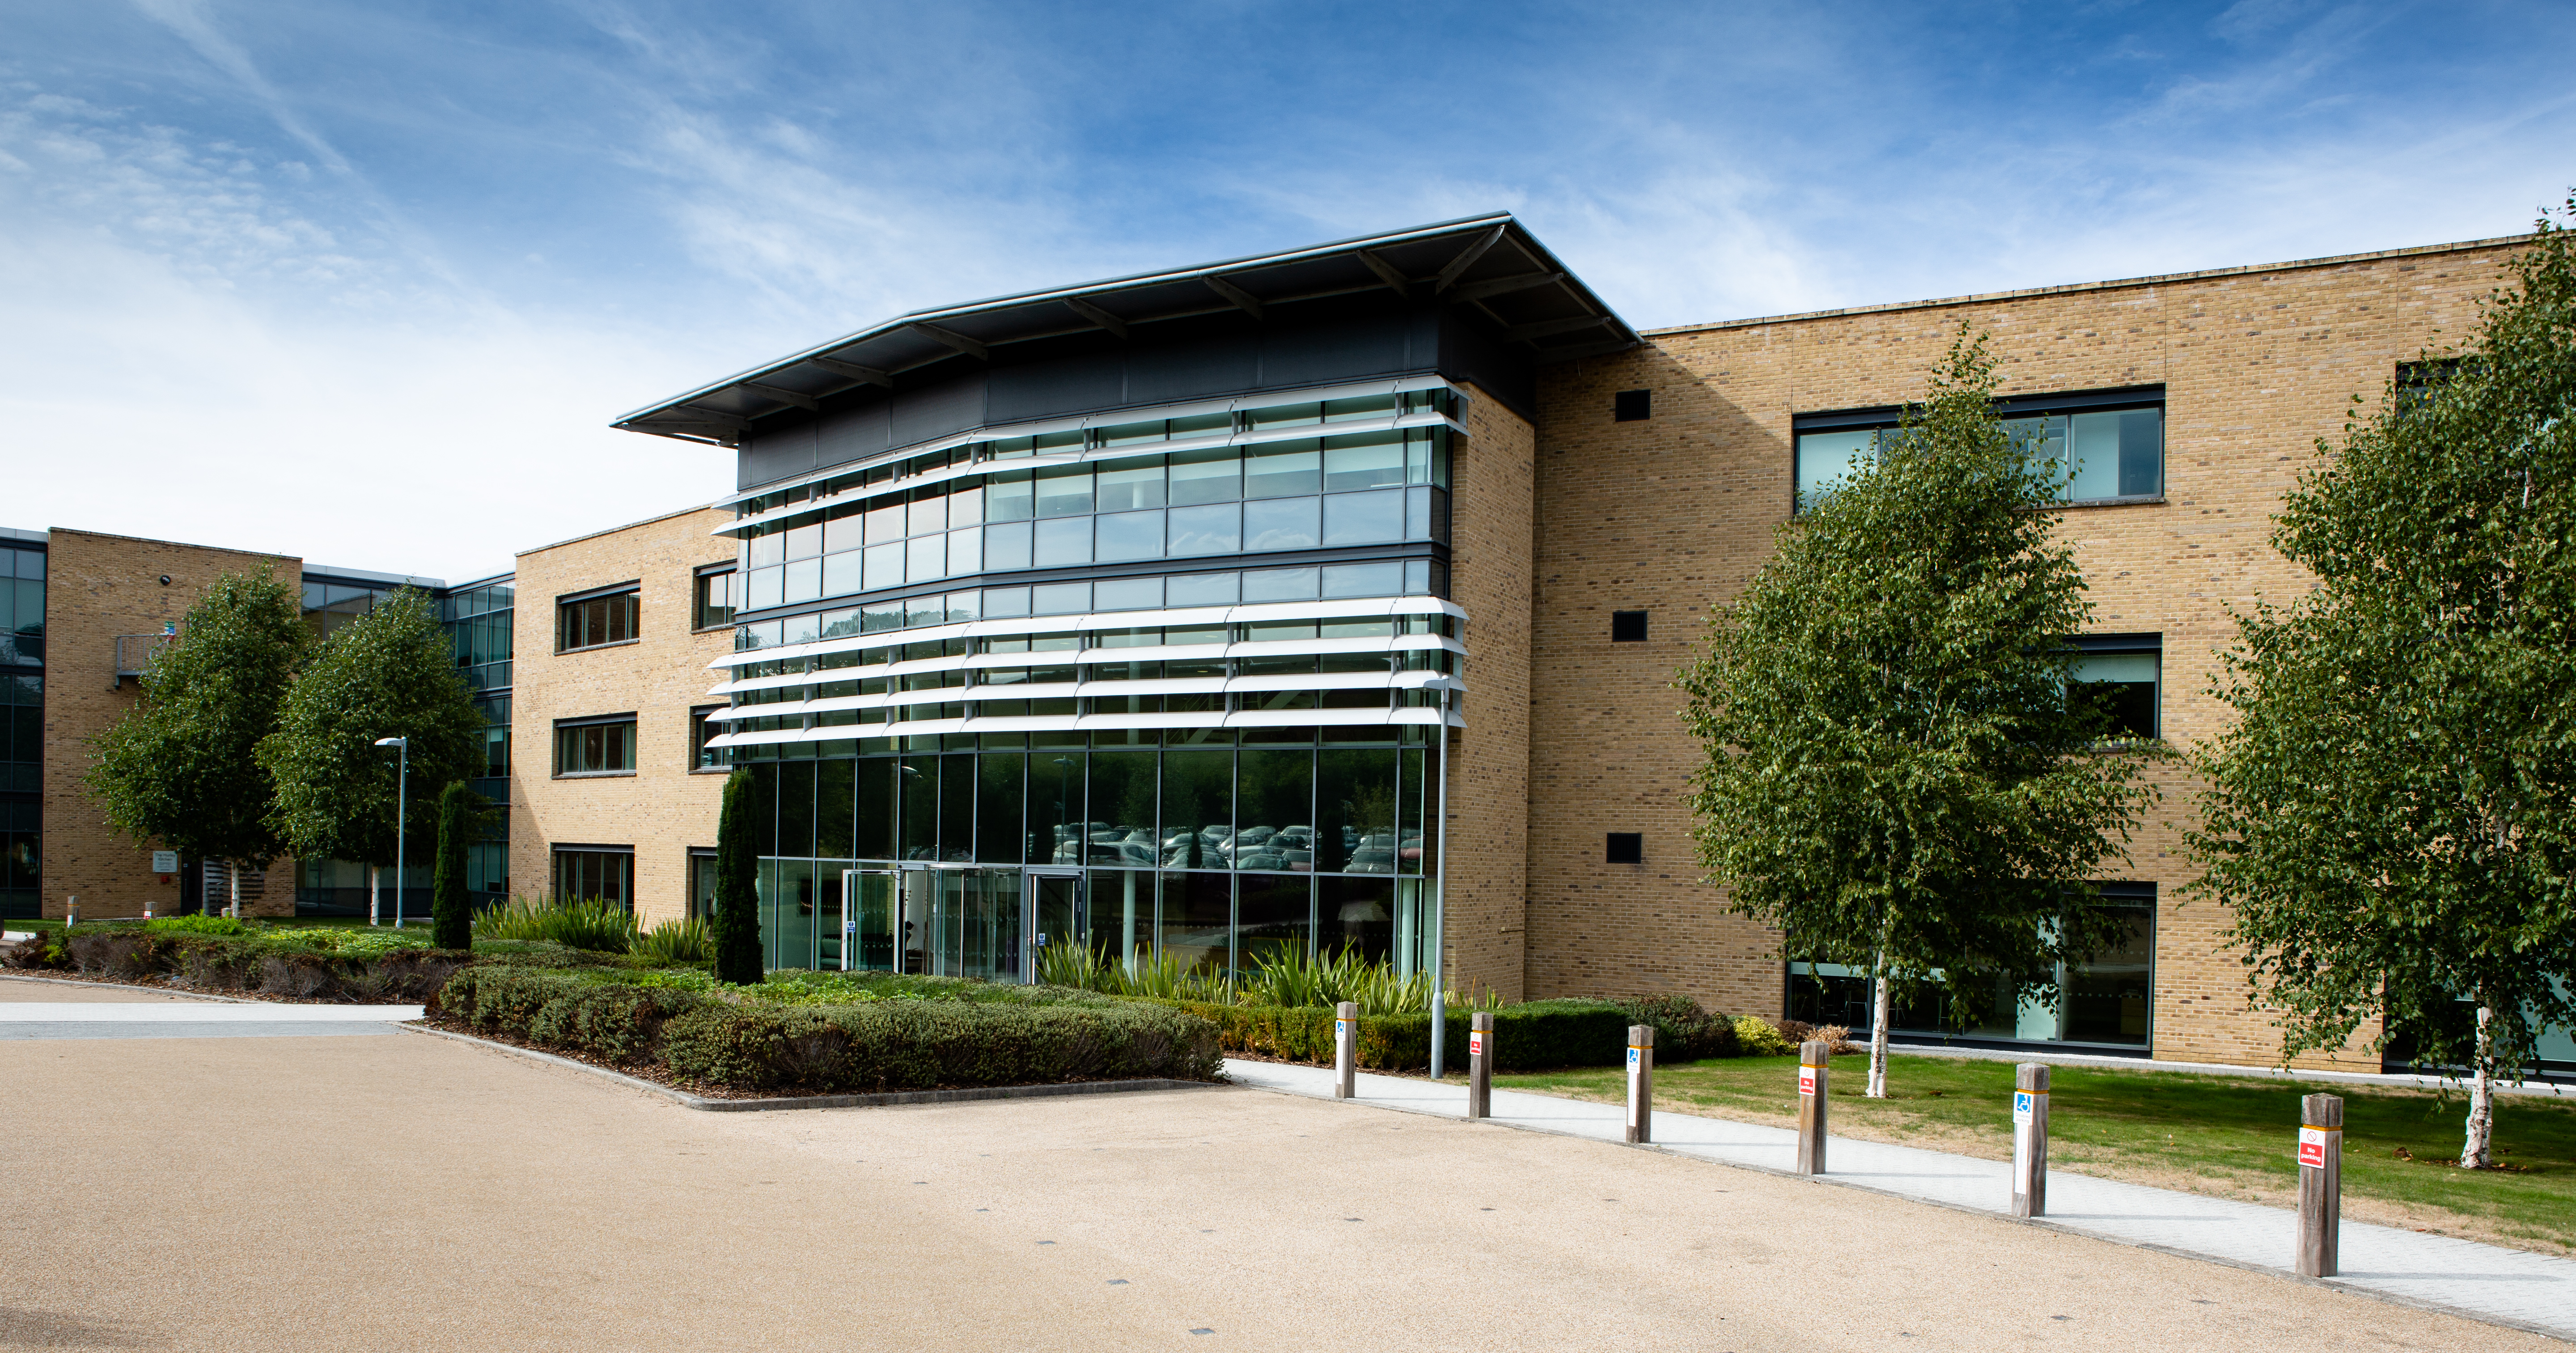 LEO Pharma UK office based in Hurley, Berkshire